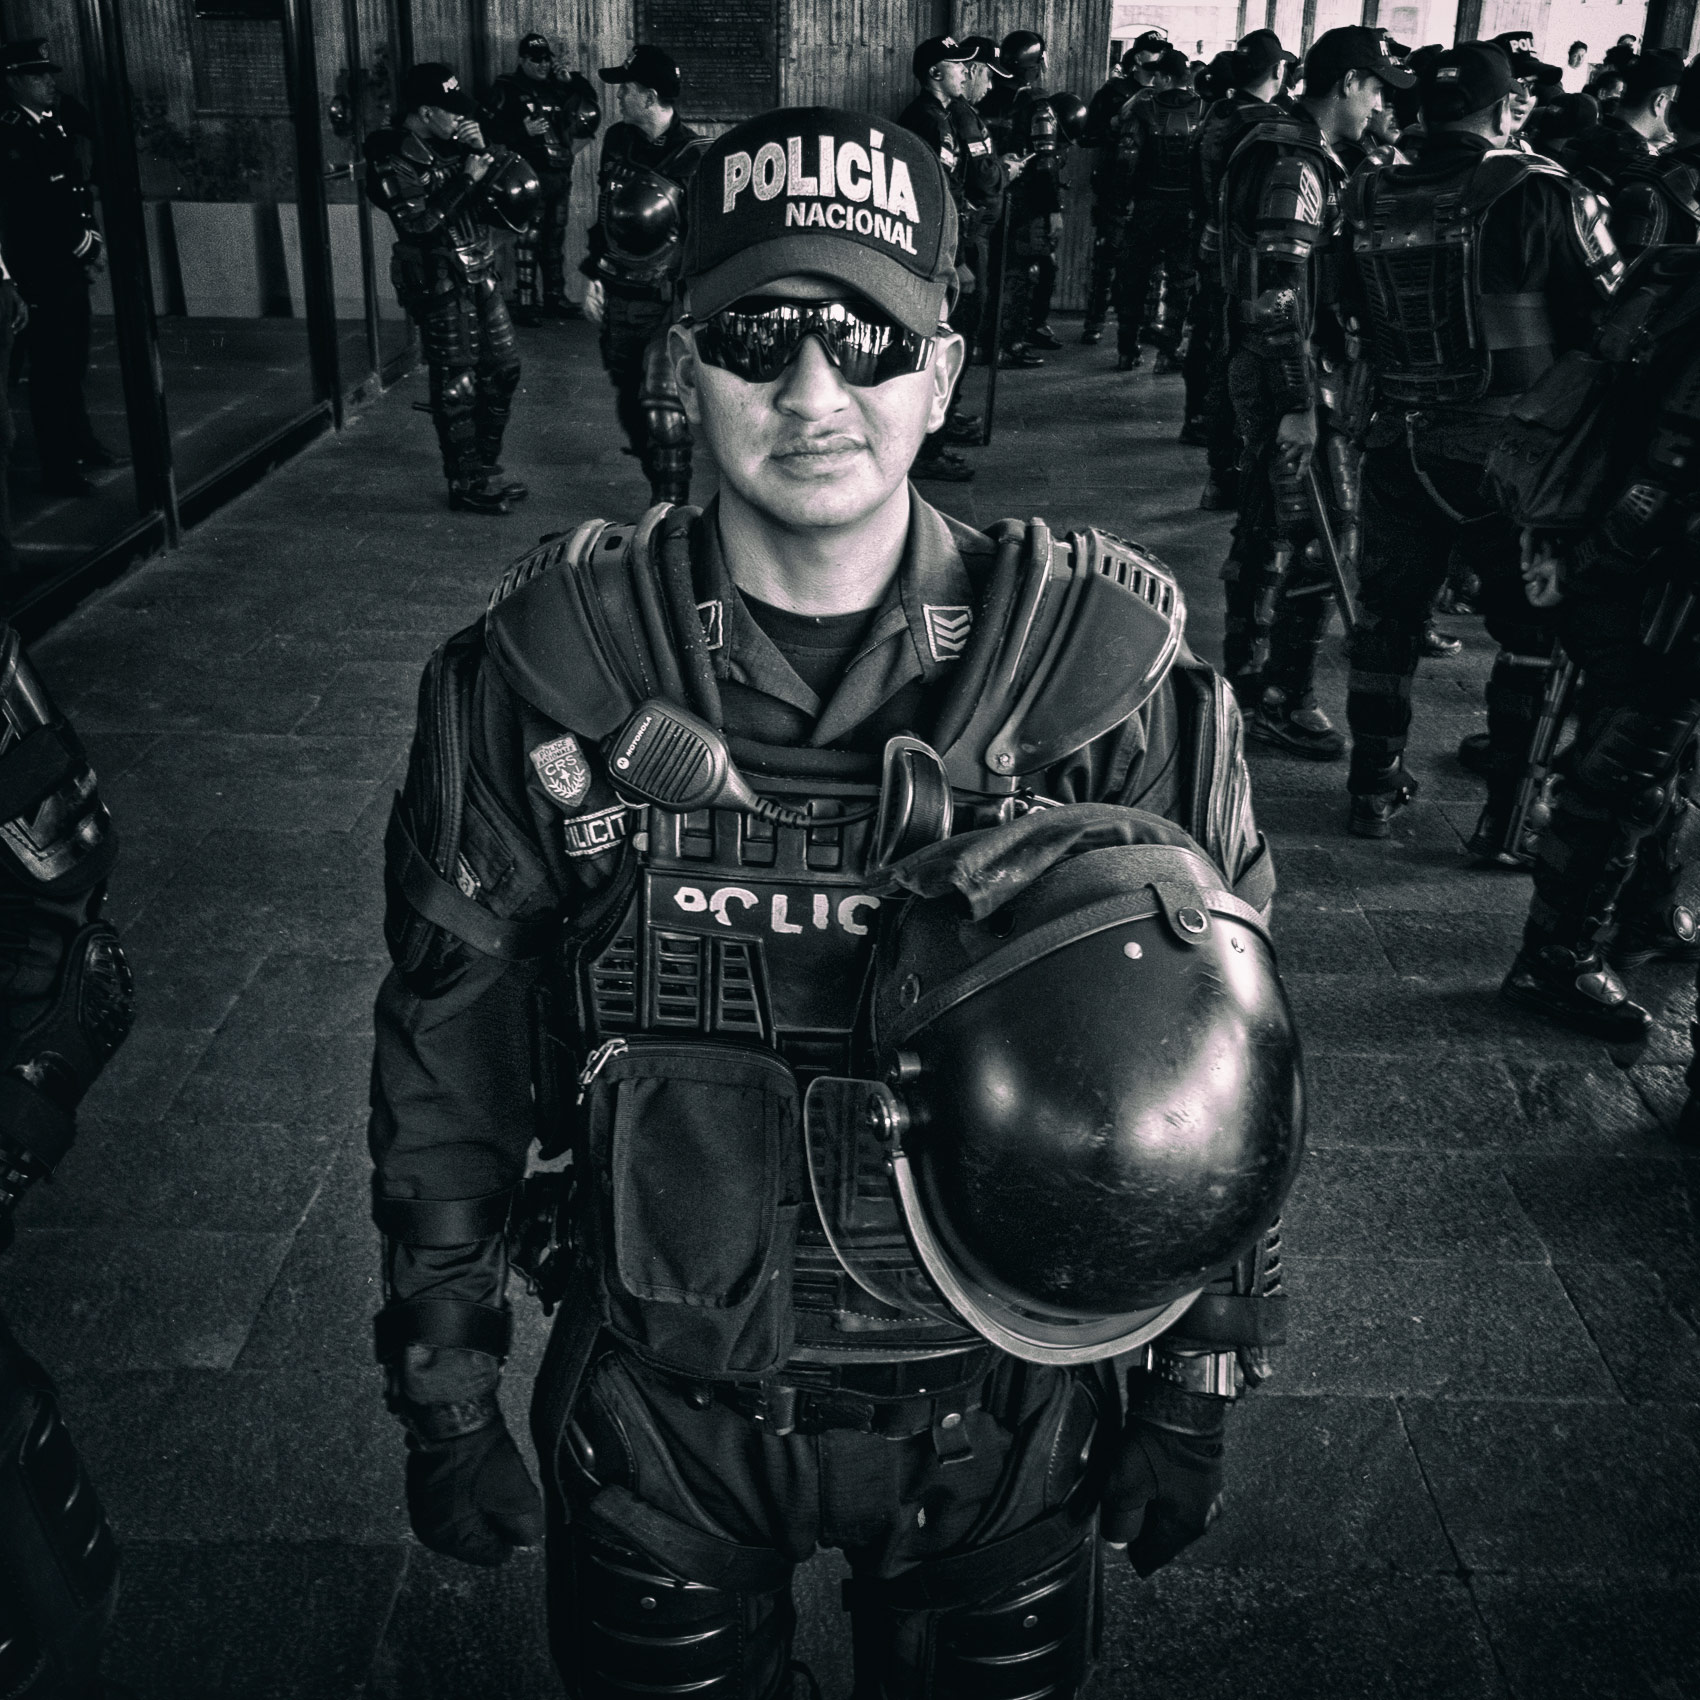 an-ecuadorian-riot-police-officer-poses-for-a-photo-during-a-protest-in-quito